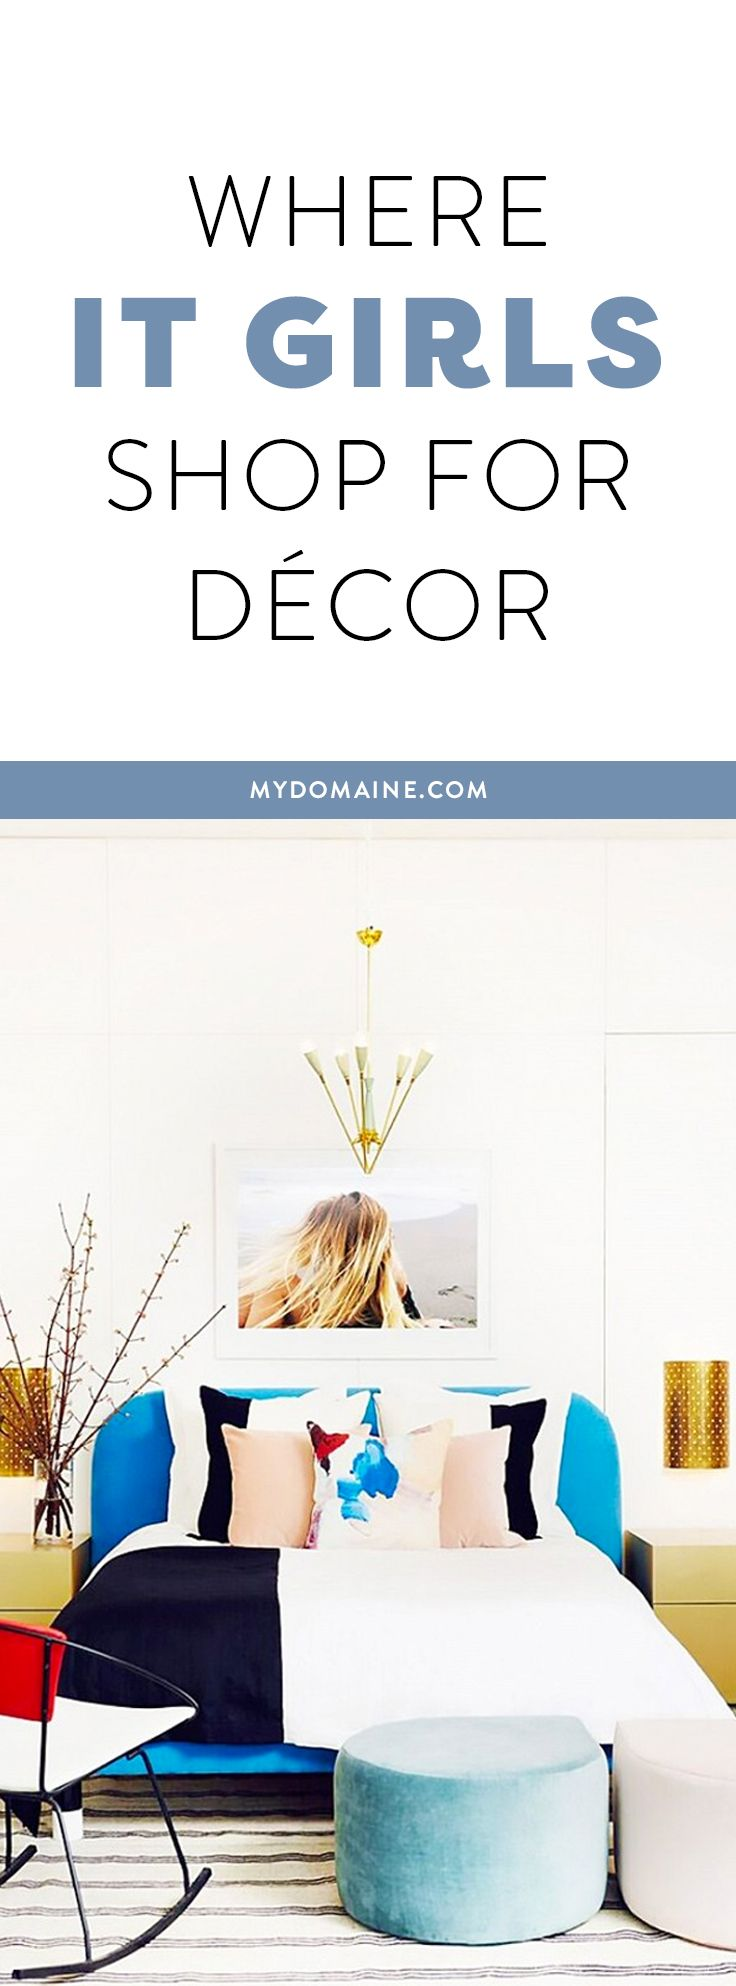 11 Cool Online Décor Shops Where It Girls Go to Decorate